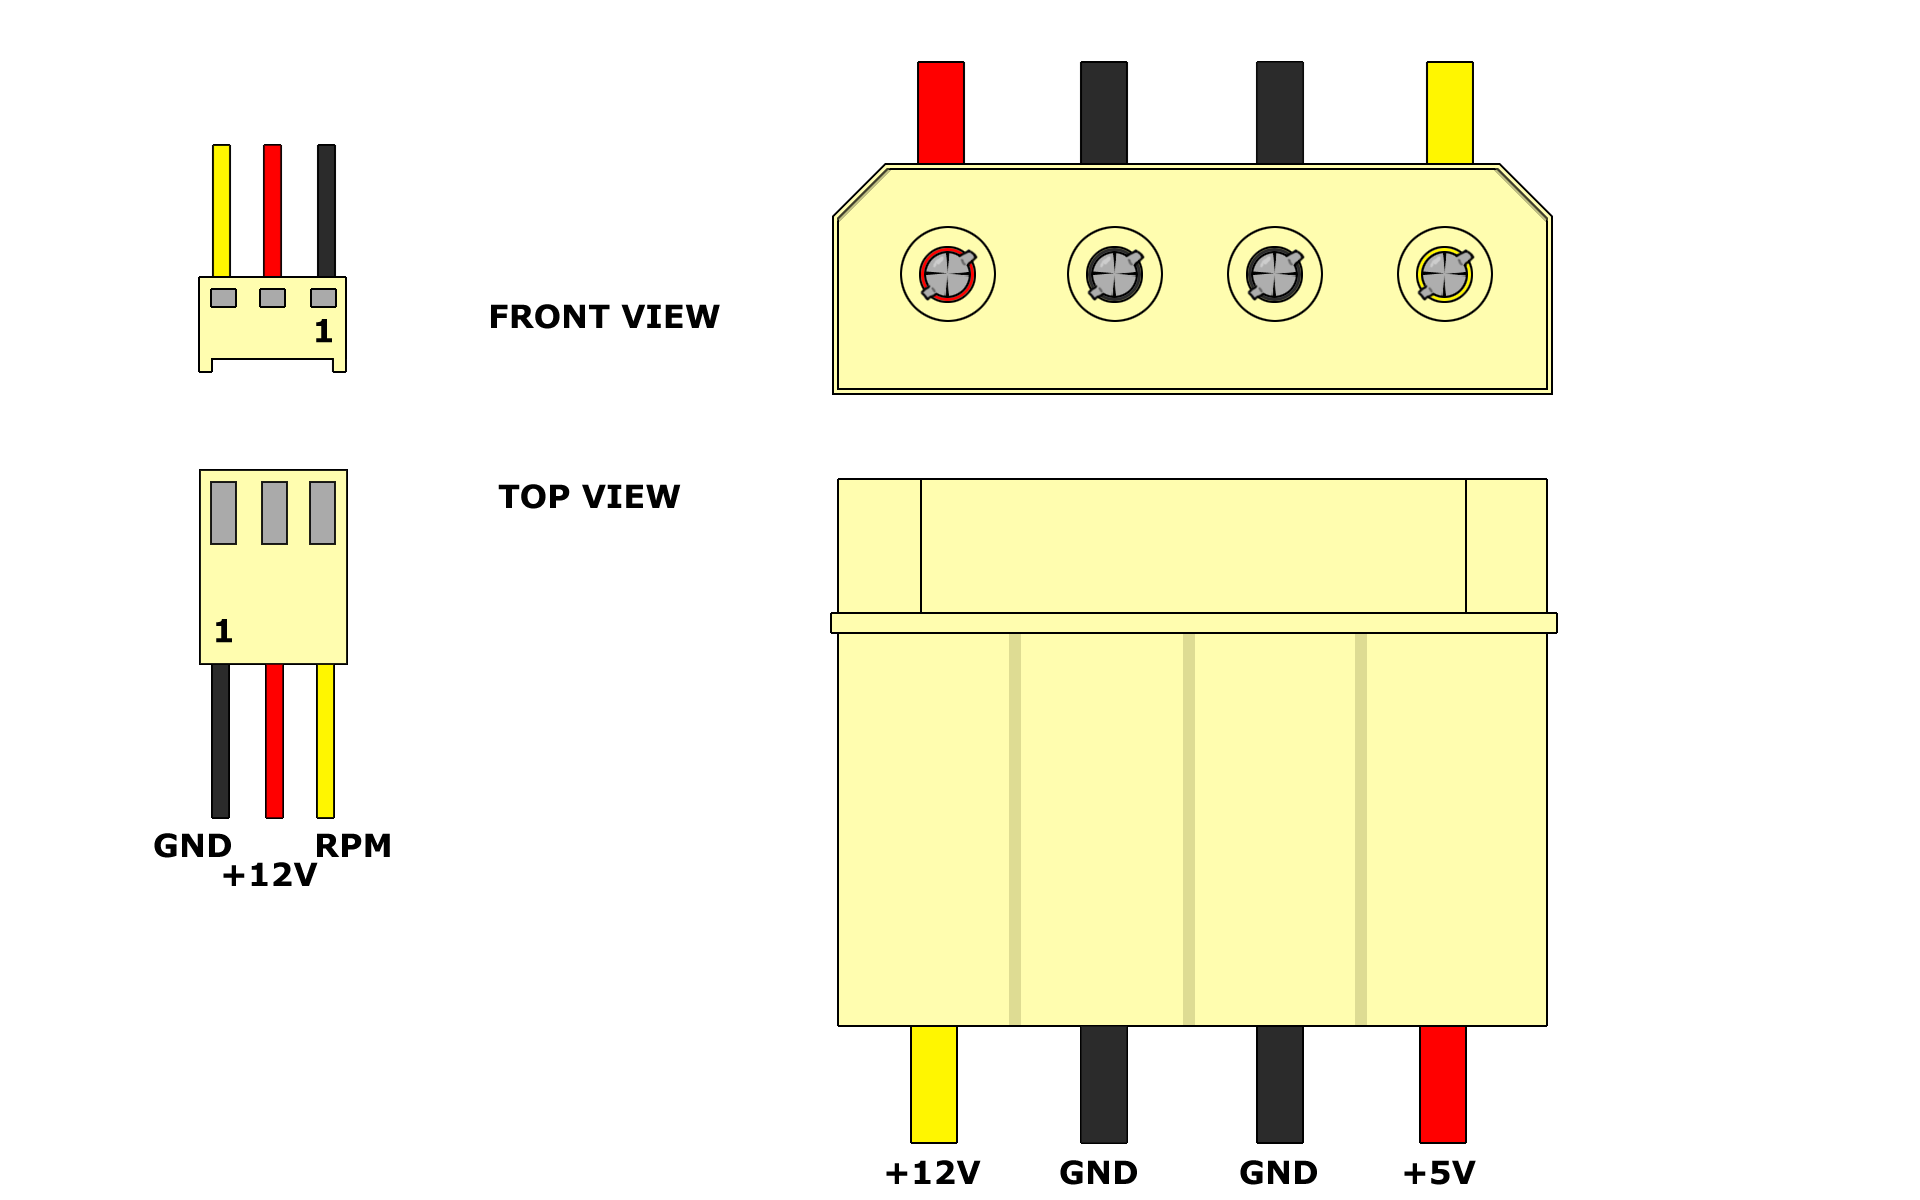 molex wiring diagram 2 position push pull light switch which wire is negative on this pc fan electrical